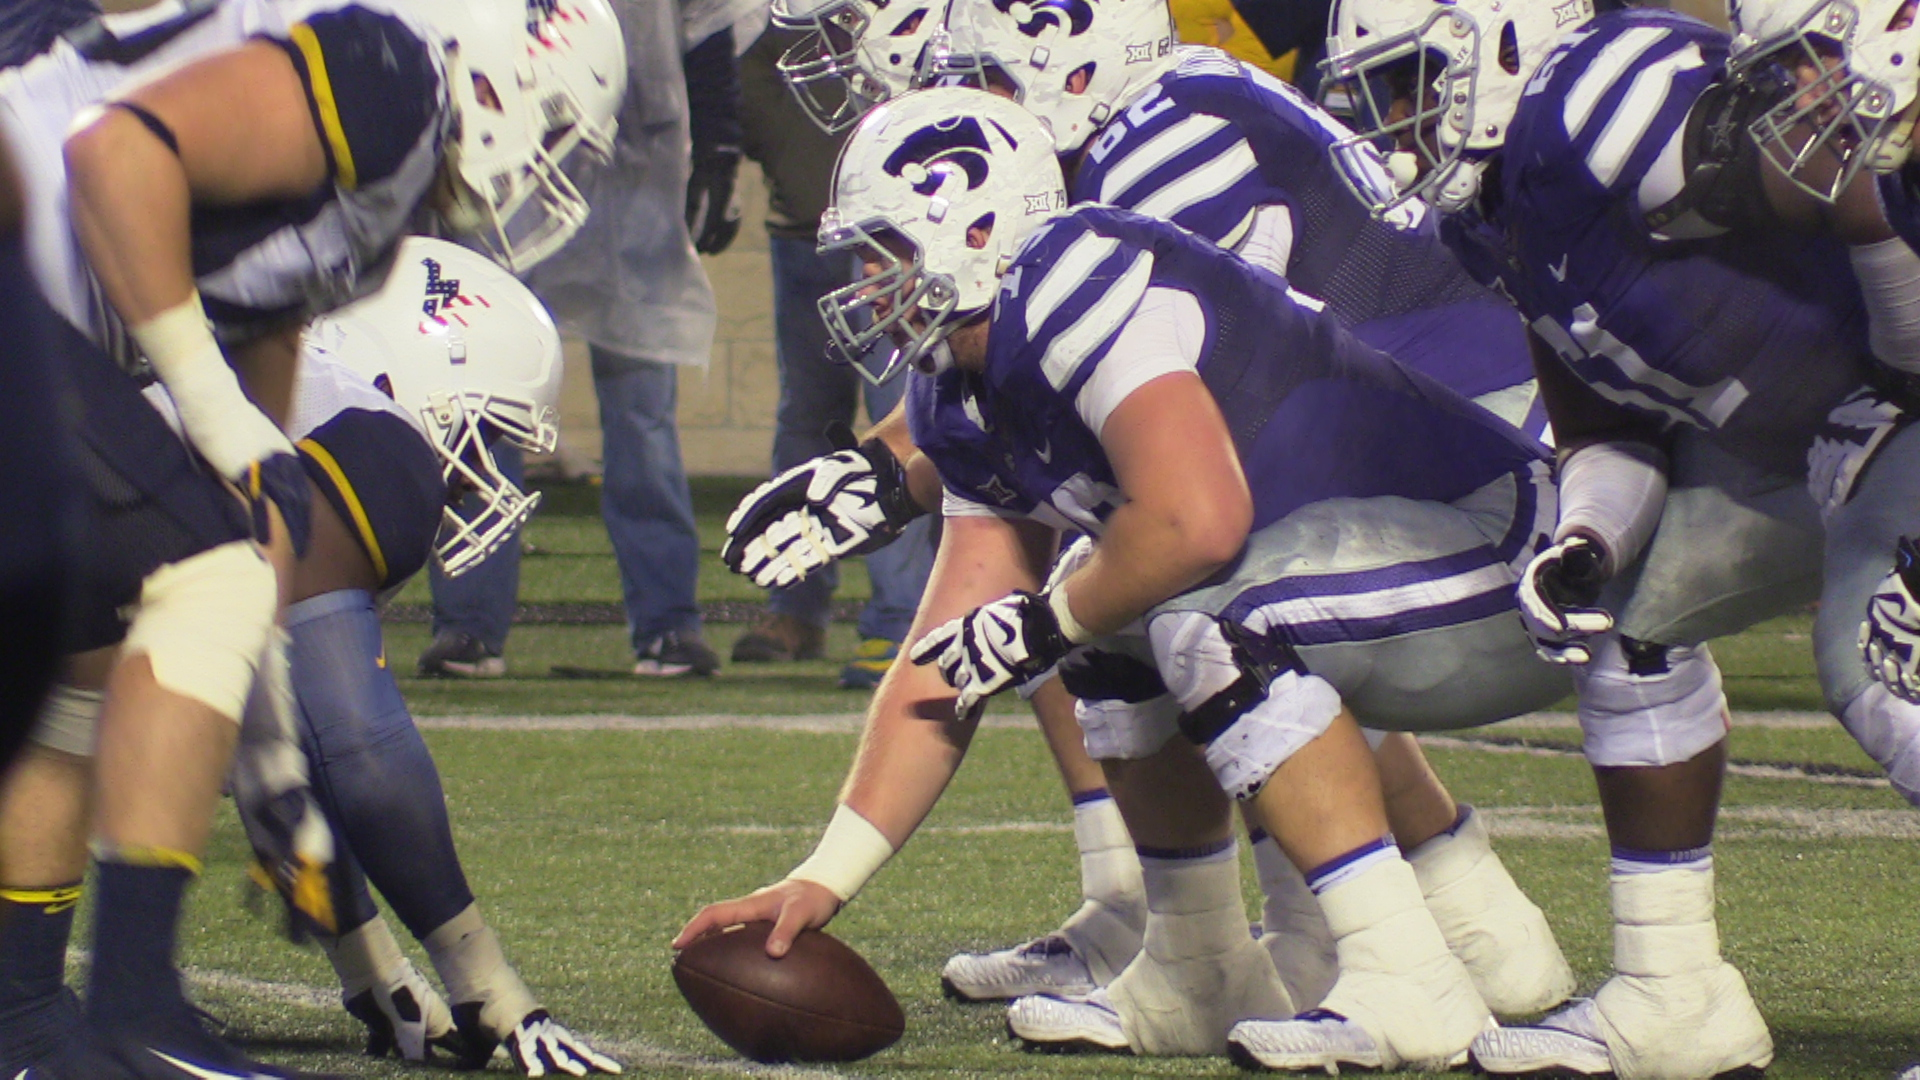 Kansas State football players who could cause problems for West Virginia